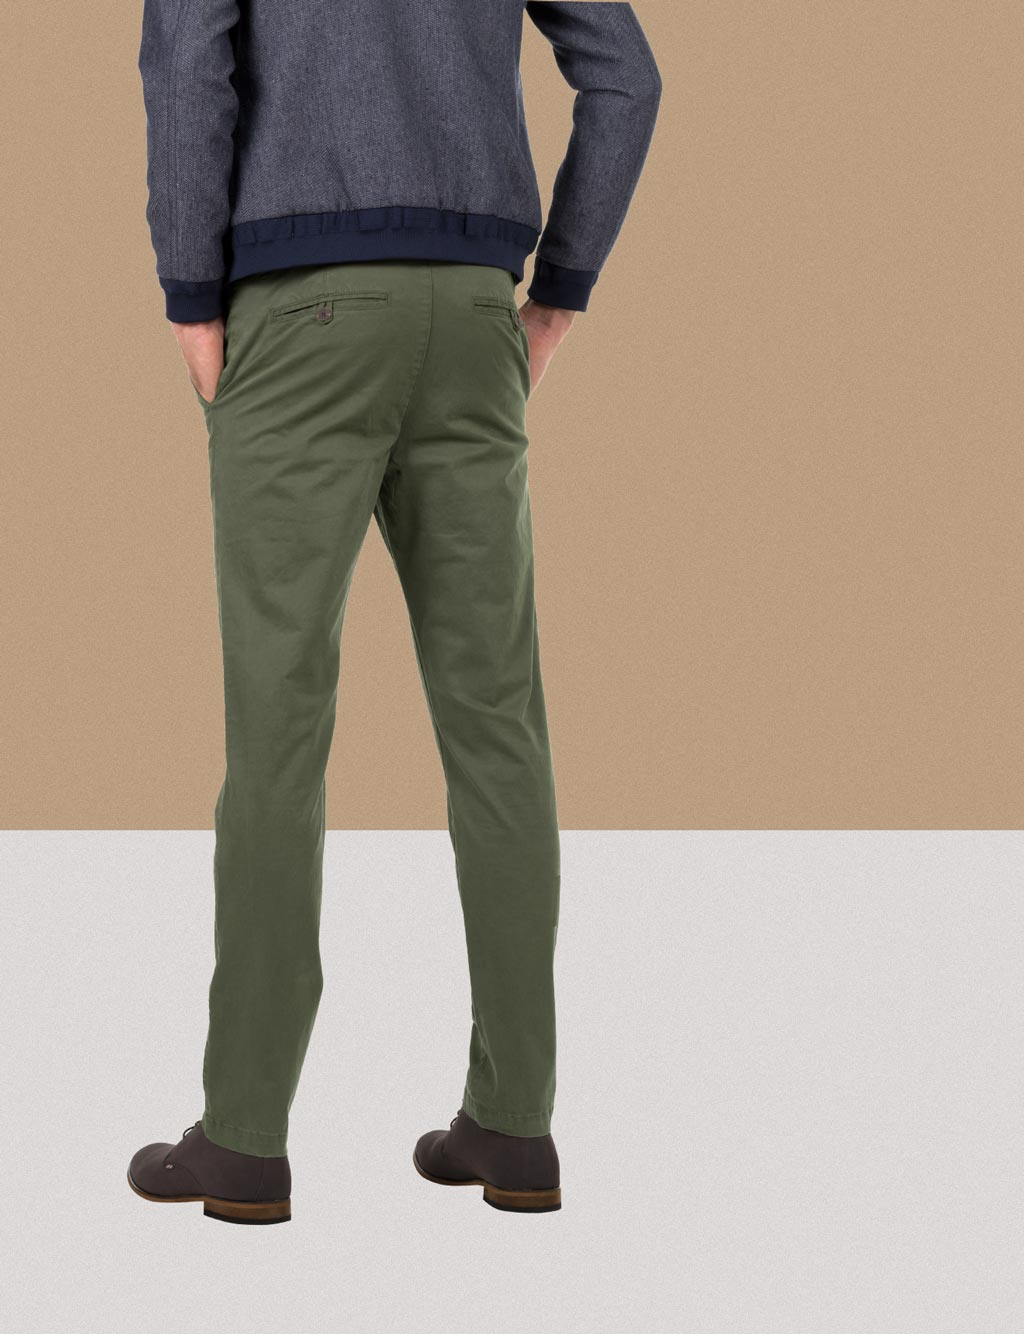 The Green Winter Chino